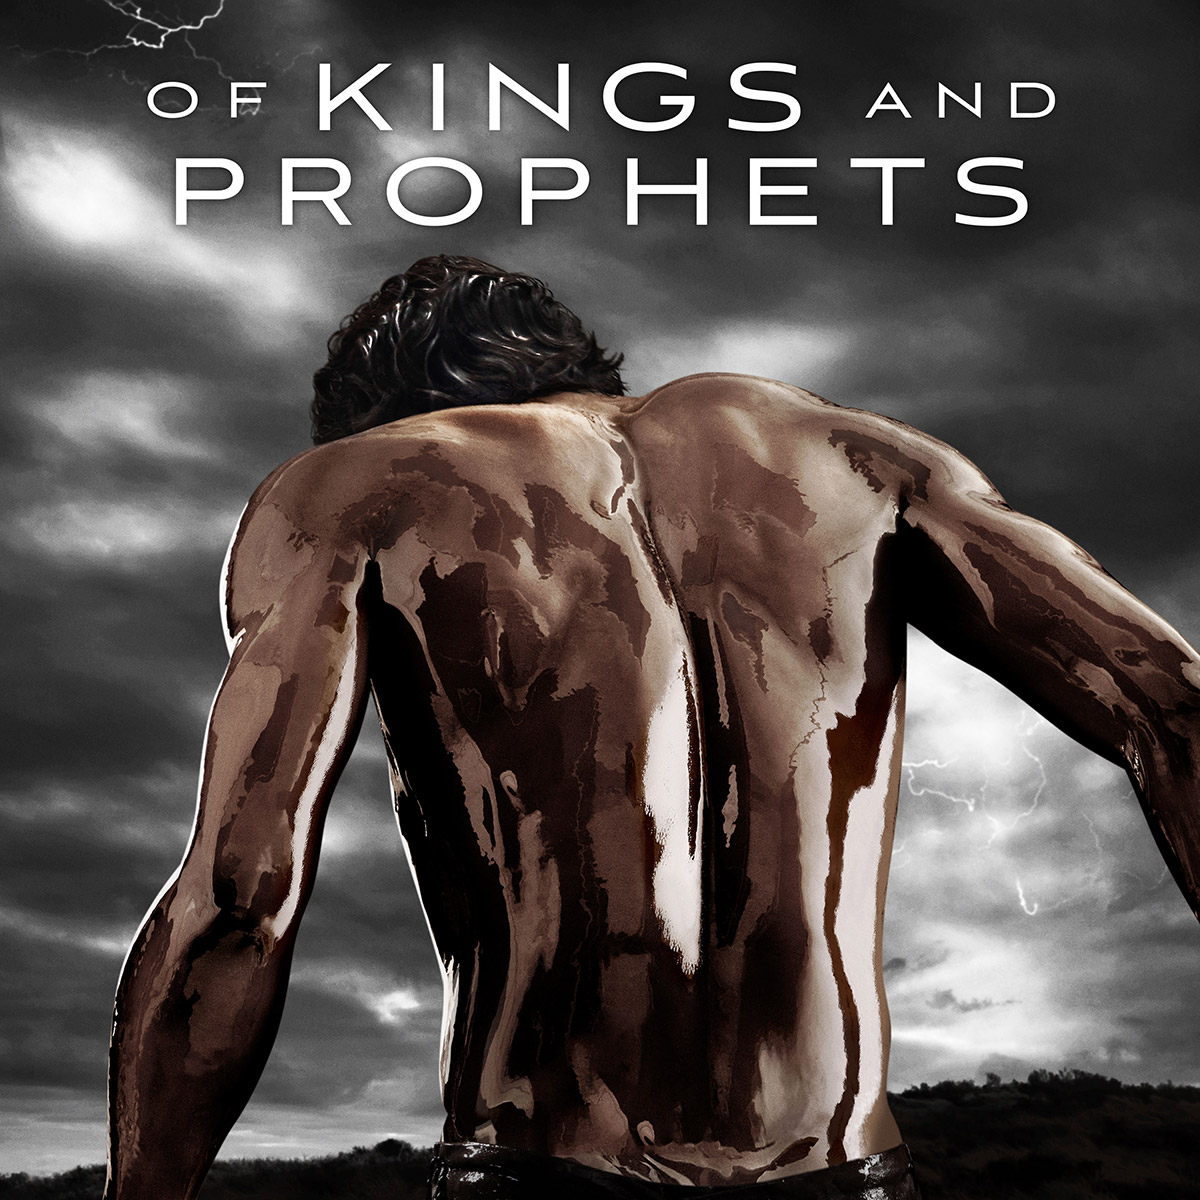 books of kings and jericho 28 and that day joshua took makkedah, and smote it with the edge of the sword, and the king thereof he utterly destroyed, them, and all the souls that were therein he let none remain: and he did to the king of makkedah as he did unto the king of jericho.